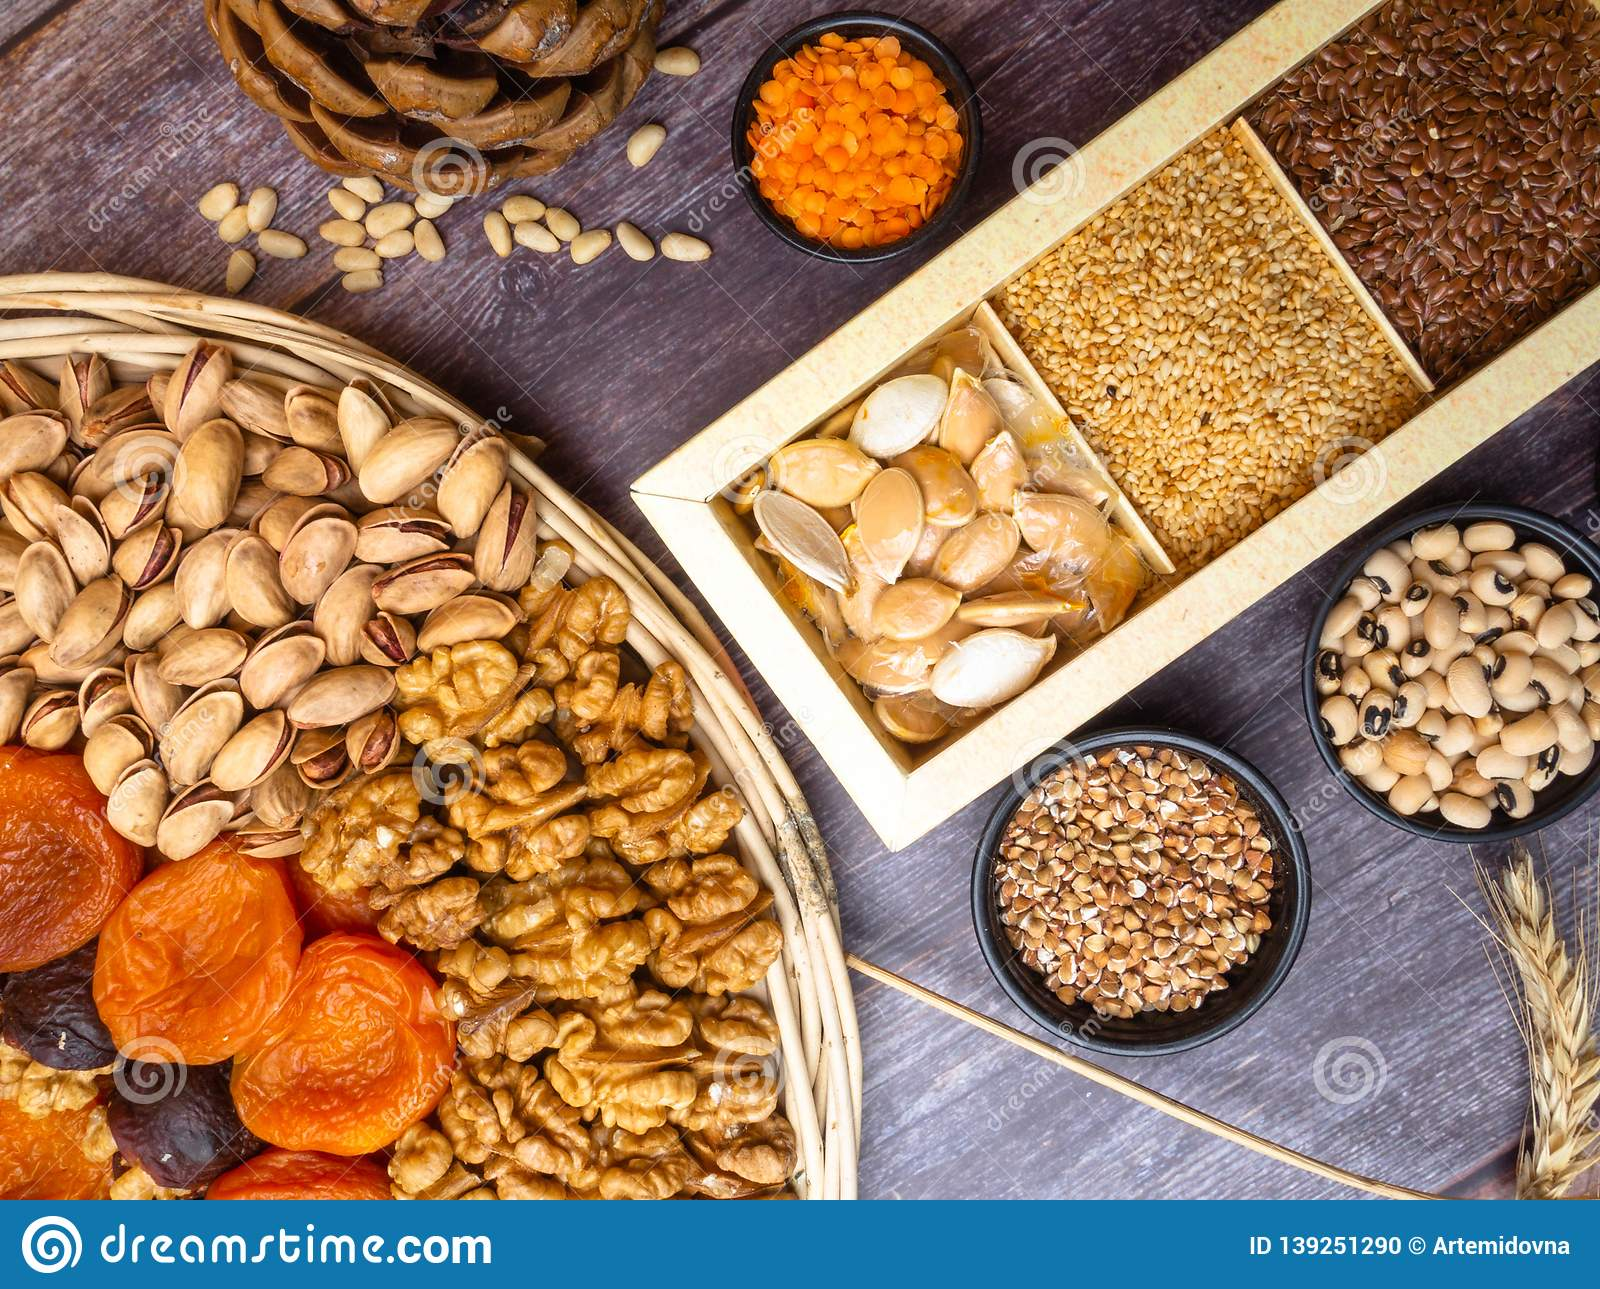 Vegan protein source. Beans, lentils, nuts and seeds. Top view on wooden table. Healthy vegetarian food